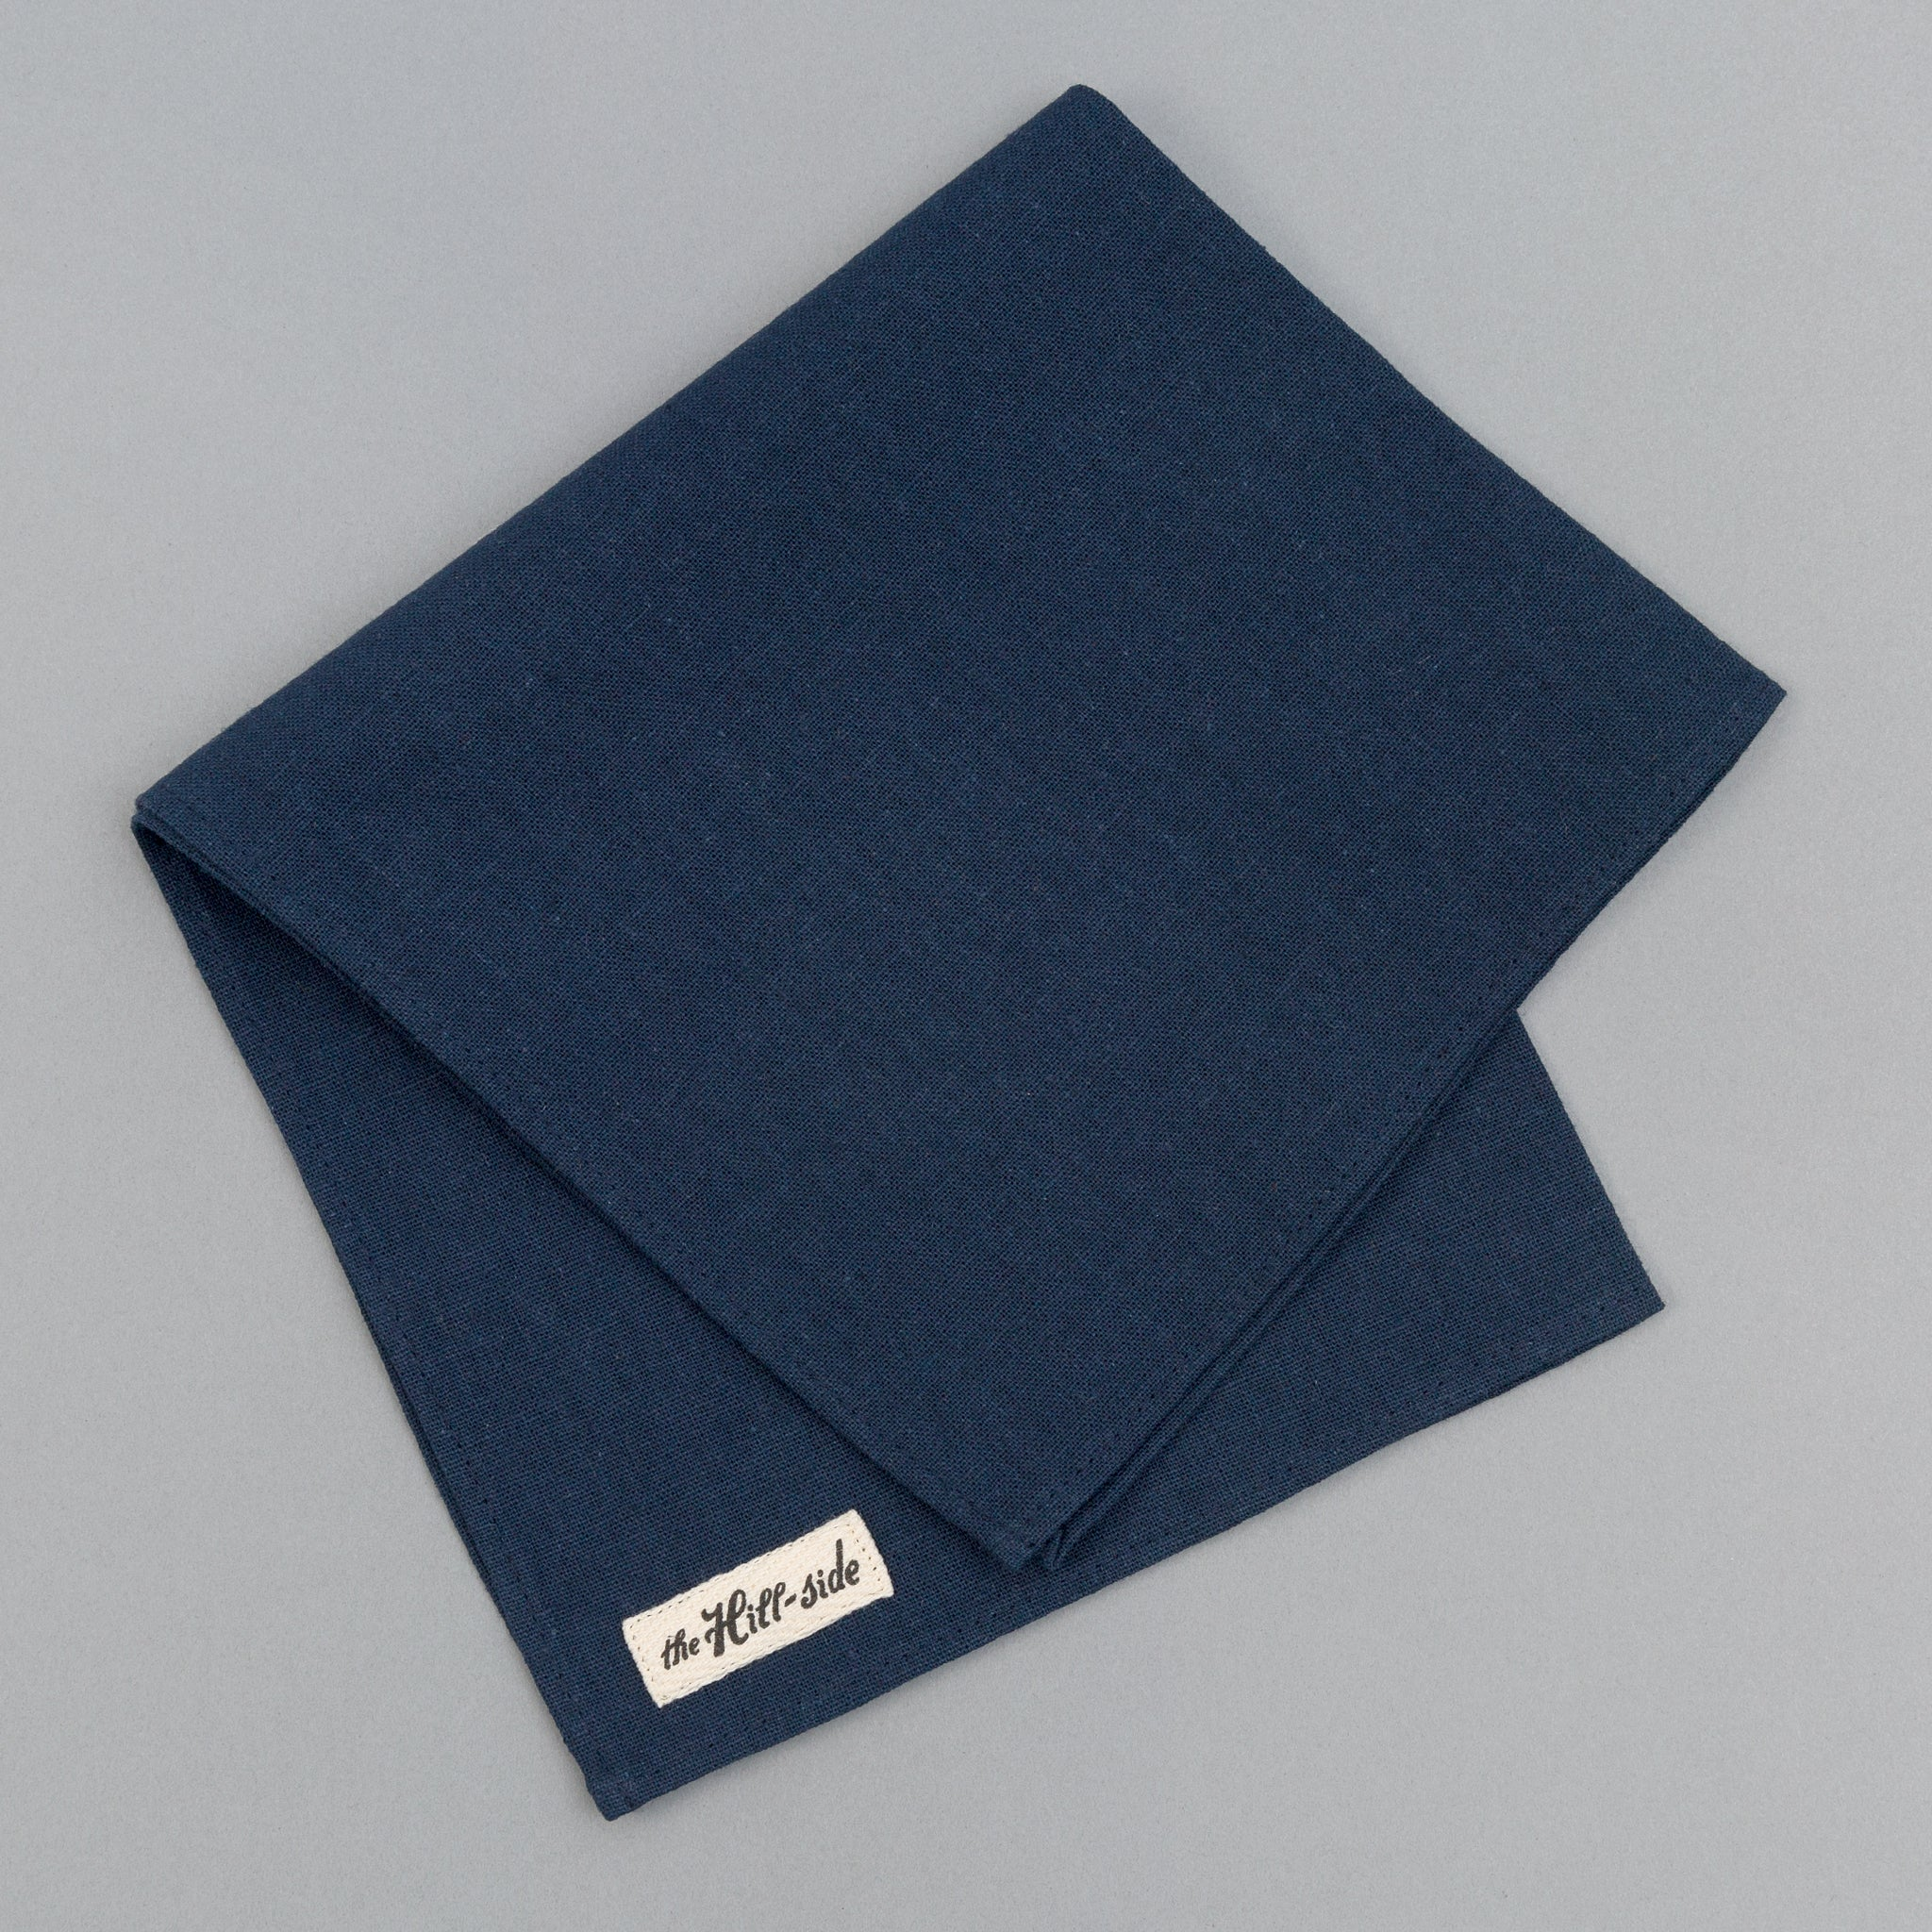 The Hill-Side - Linen / Cotton Oxford Pocket Square, Navy - PS1-418 - image 1